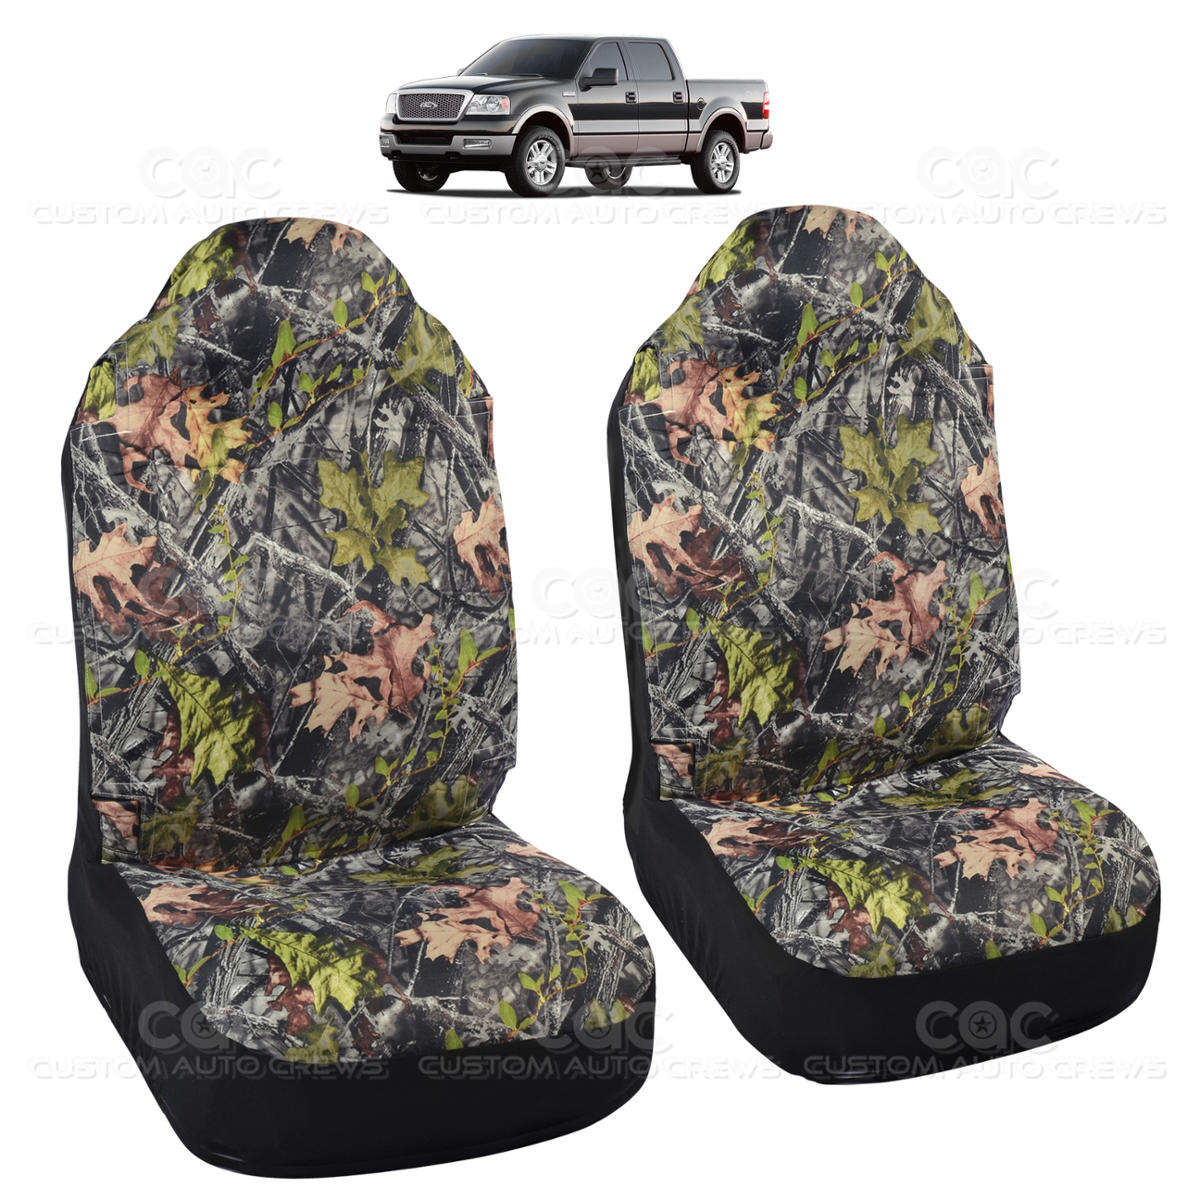 camo seat cover for ford f 150 big truck seat cover 2 piece camouflage ebay. Black Bedroom Furniture Sets. Home Design Ideas